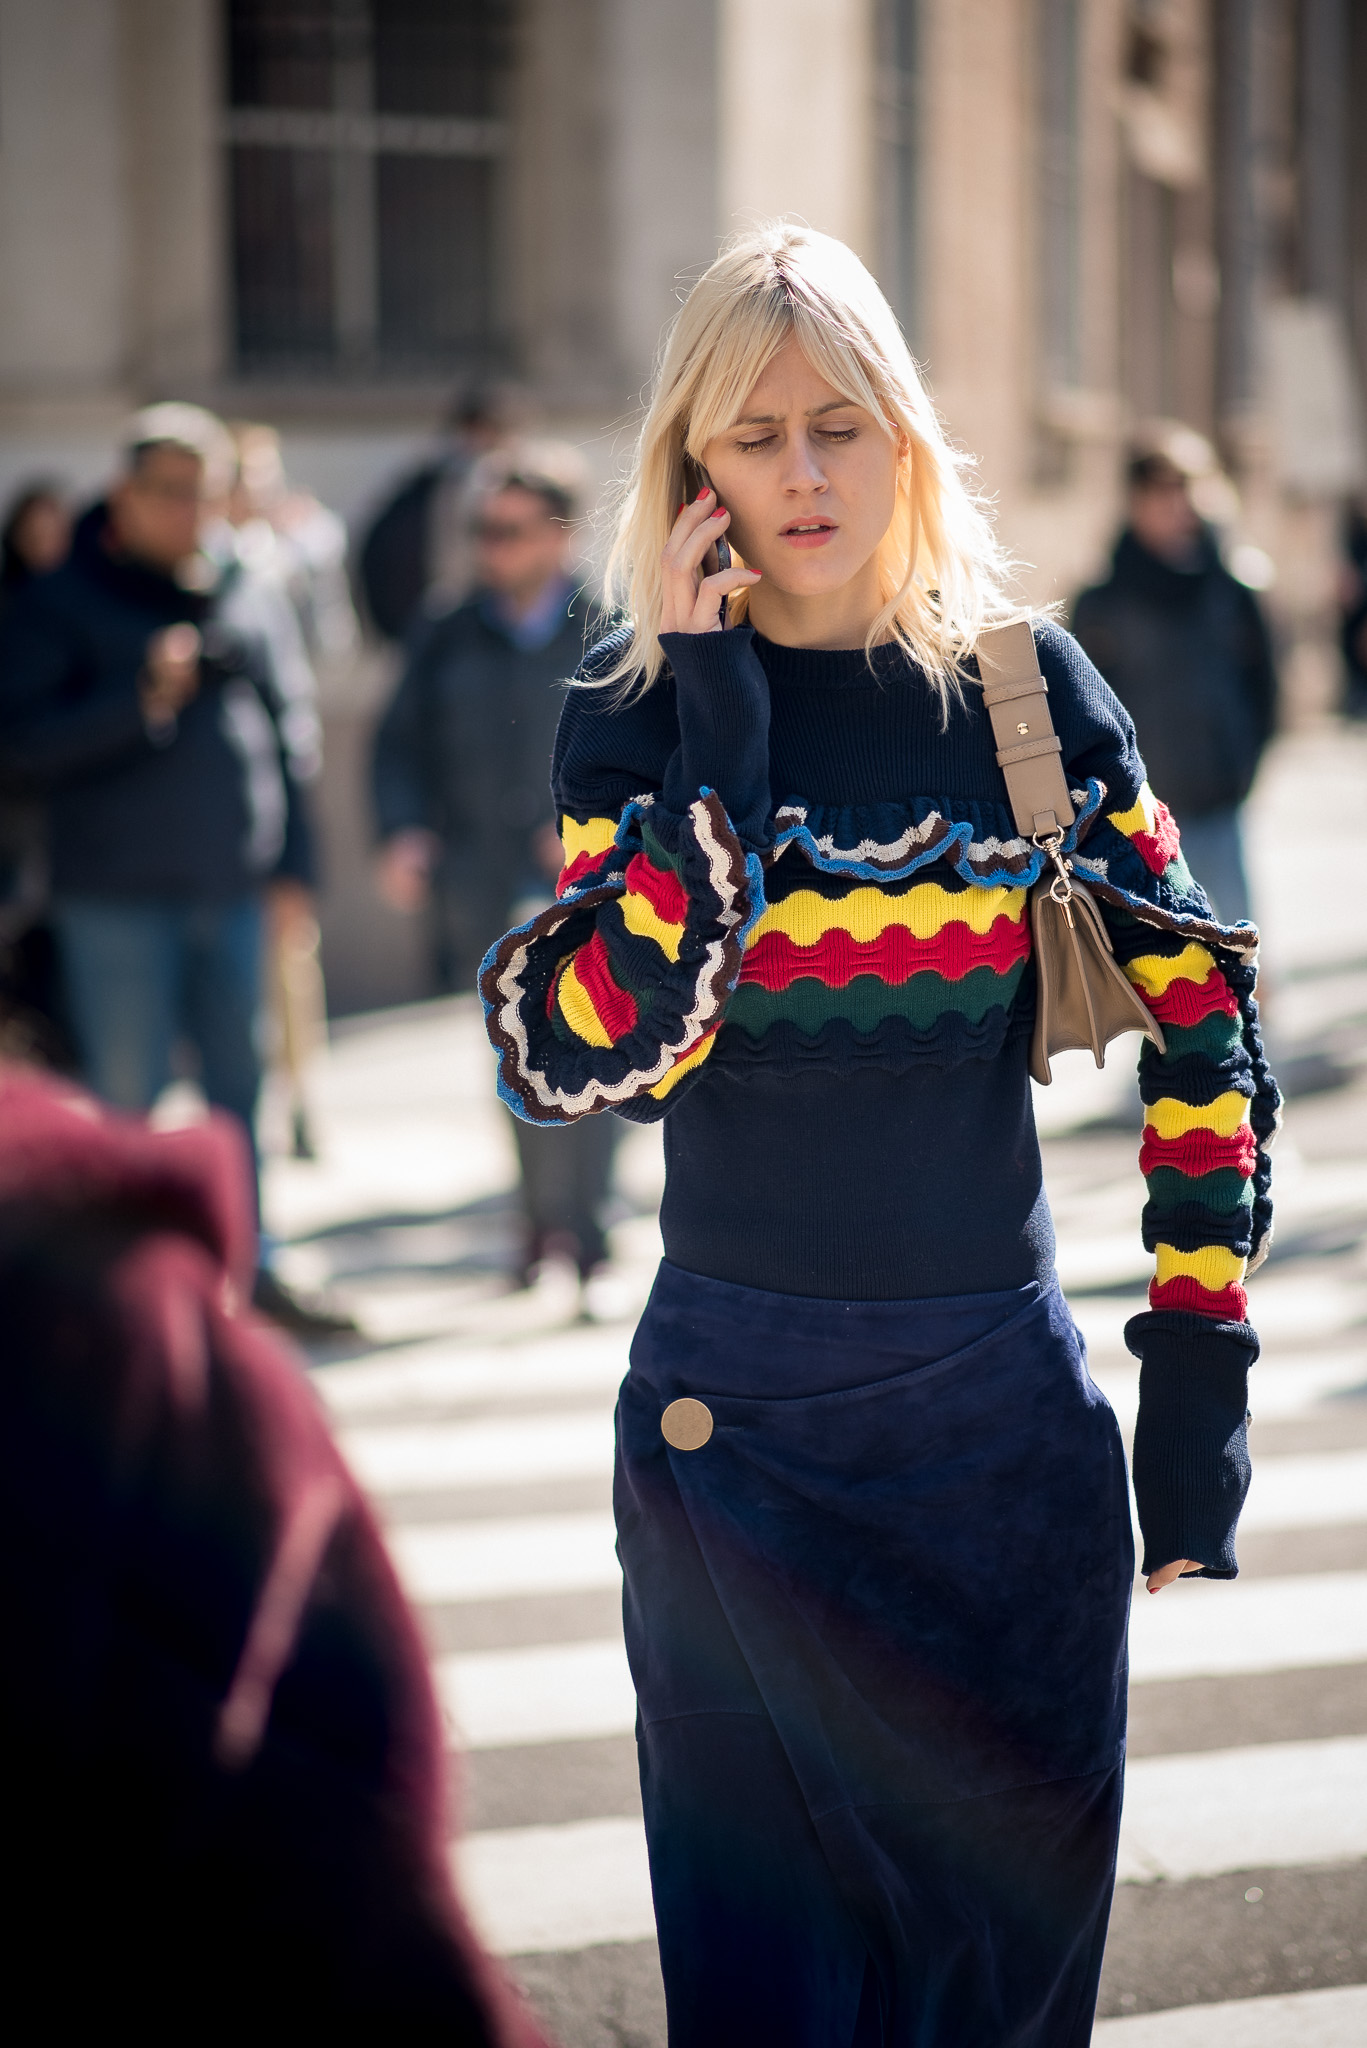 Linda Tol_Street Style Moments_Trussardi_Milan Fashion Week_February 26th 2017_Photography Annika Lagerqvist_www.annikasomething.com